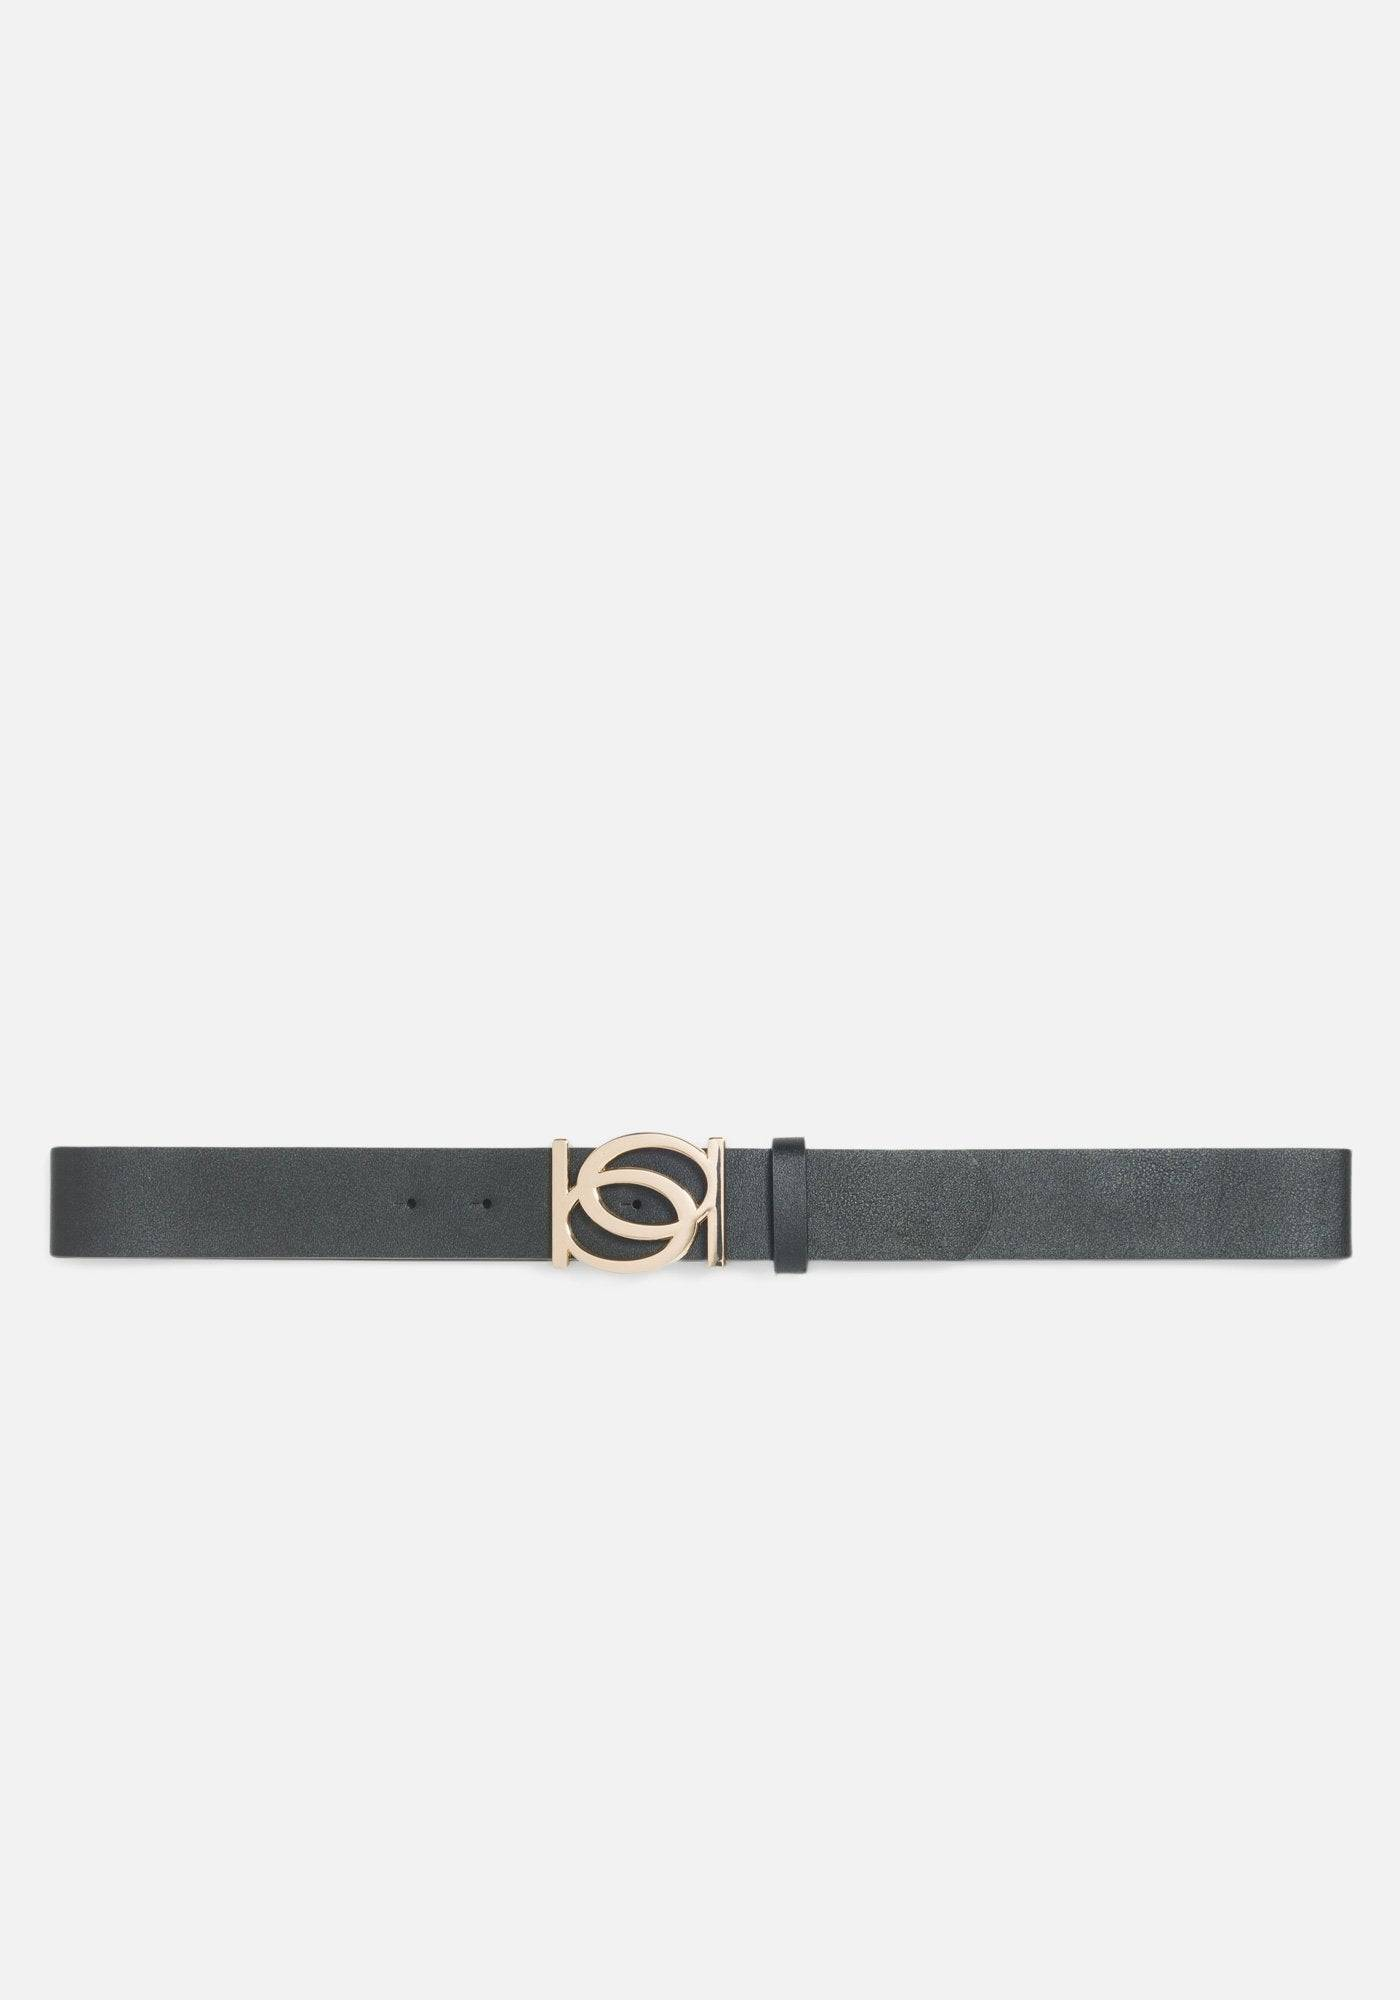 Bebe Women's Goldtone Logo Belt, Size Medium in Black Synthetic